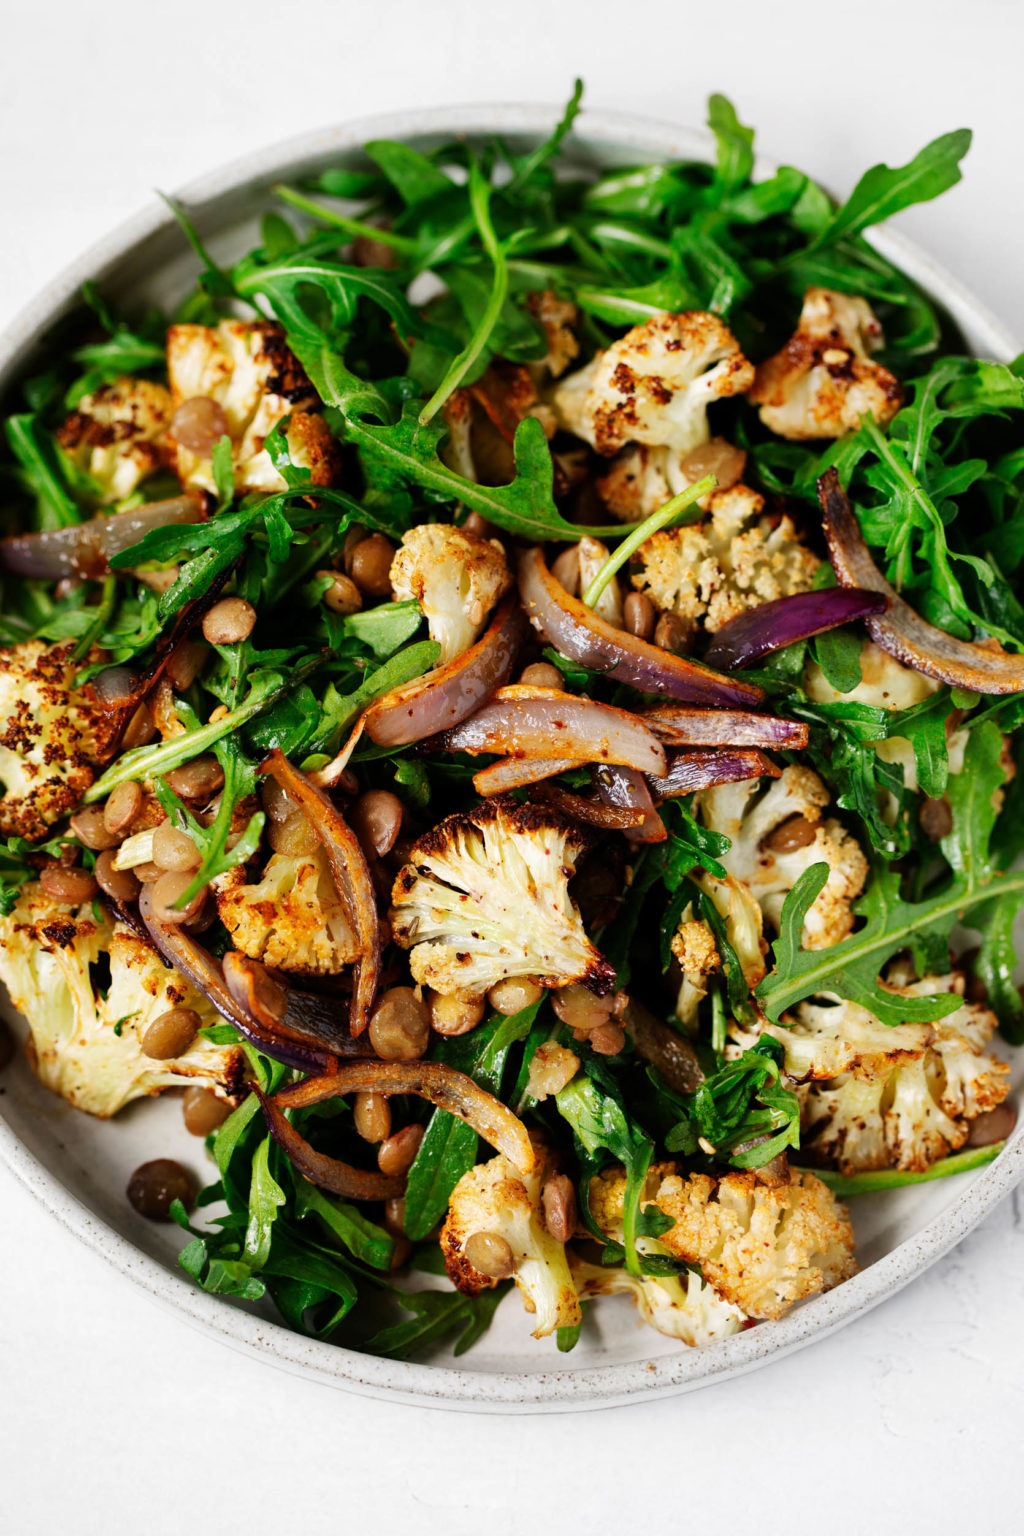 A zoomed in, birds eye photograph of a za'atar roasted cauliflower salad, which rests on a white ceramic plate.